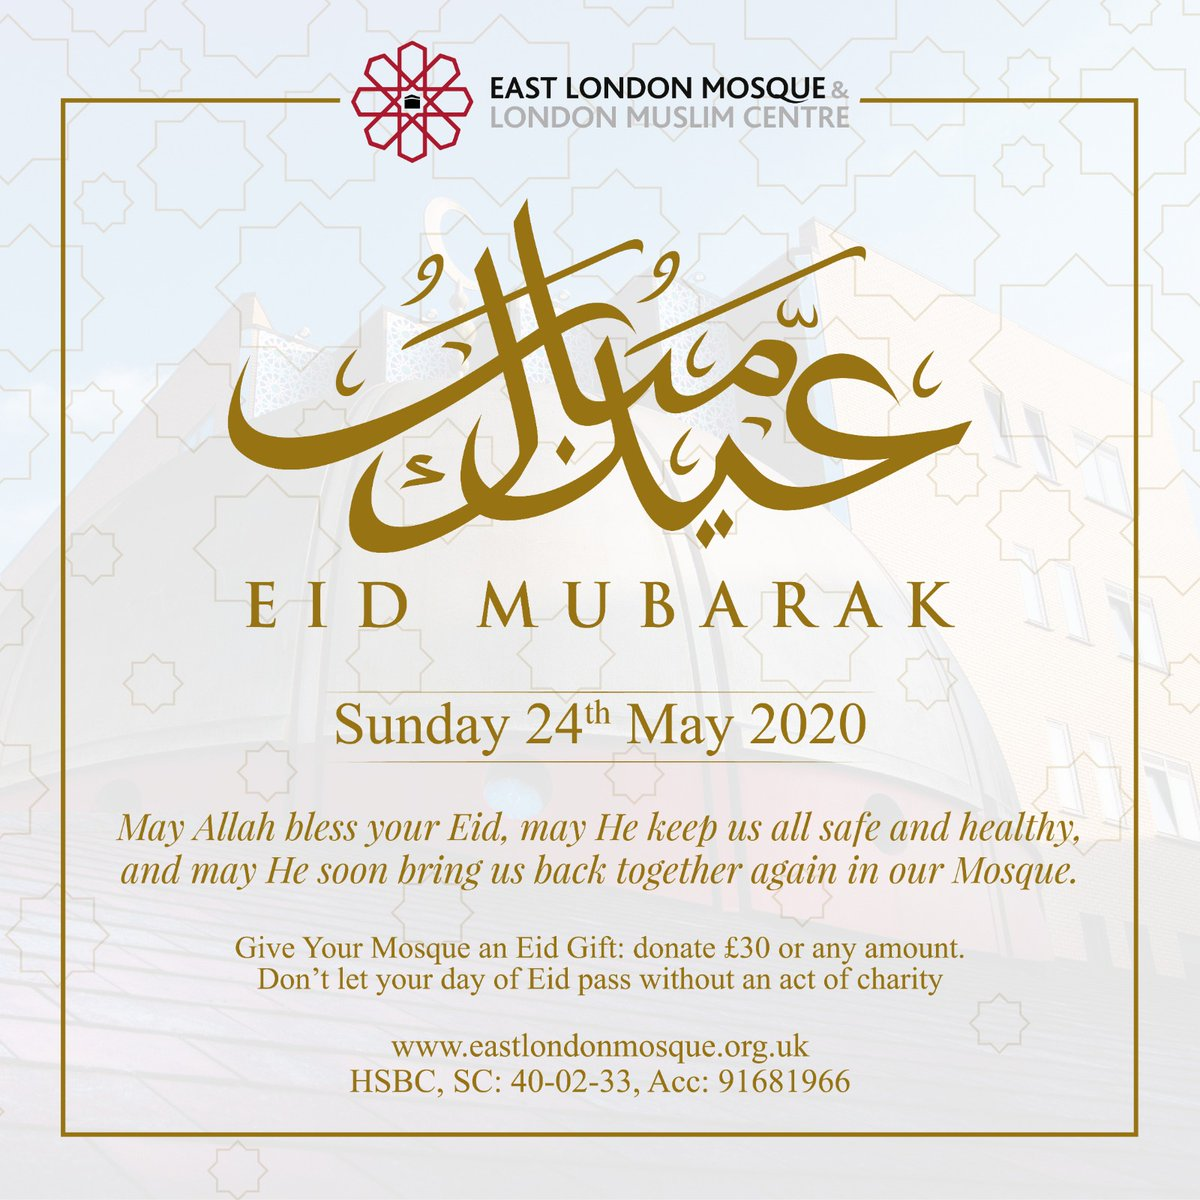 Official Announcement from the East London Mosque: Eid al-Fitr is on Sunday 24 May 2020 May Allah forgive us, accept our Sadaqah and grant us a great reward, may He keep us safe and healthy, and may He enable us to return to our Mosque soon. Eid Mubarak to you and your family!